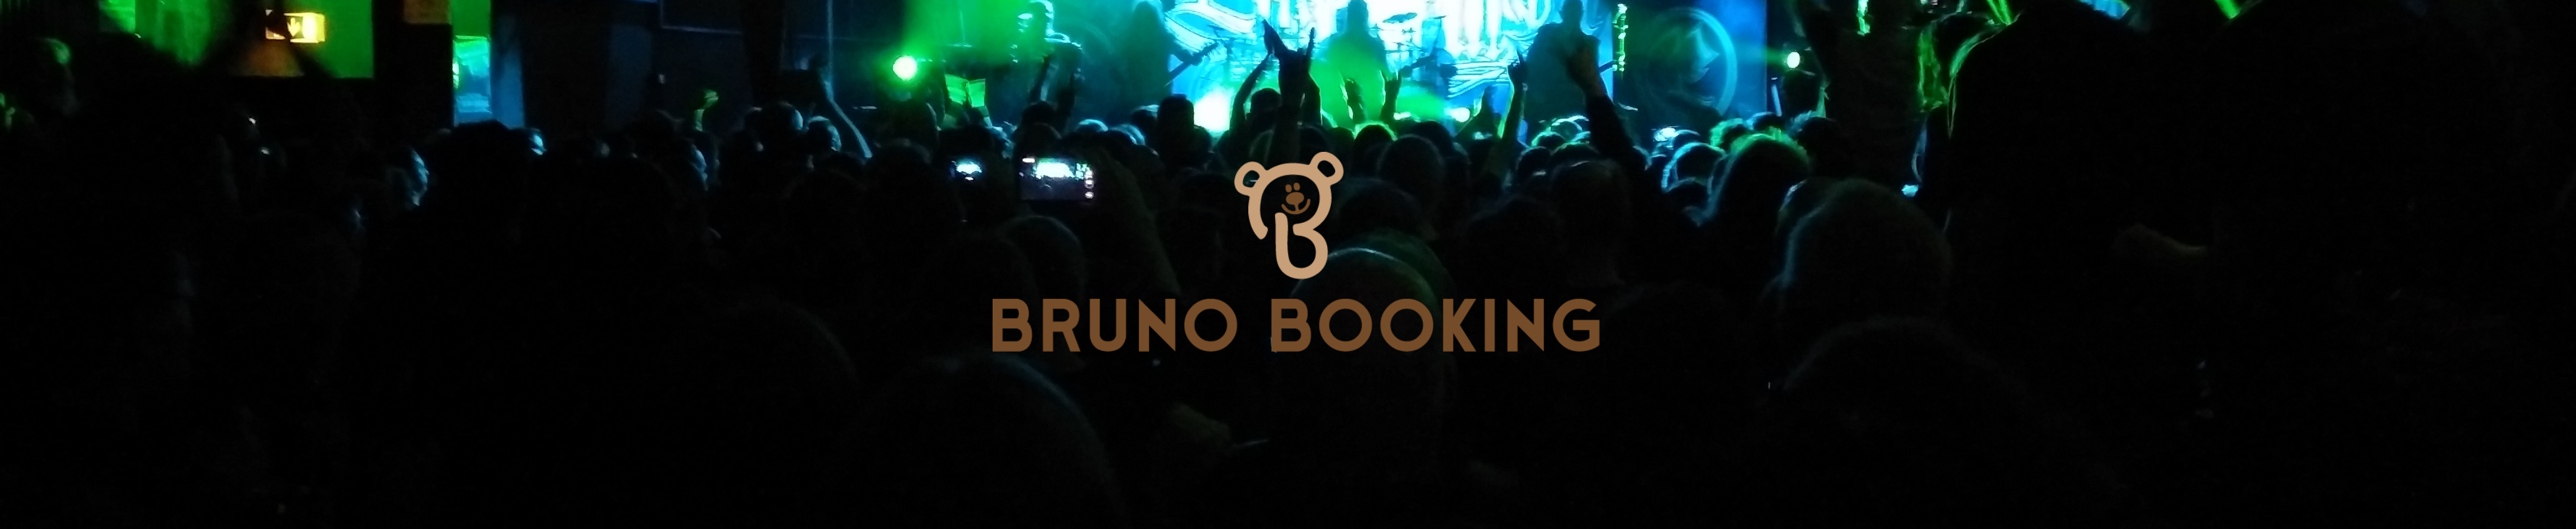 Bruno Booking